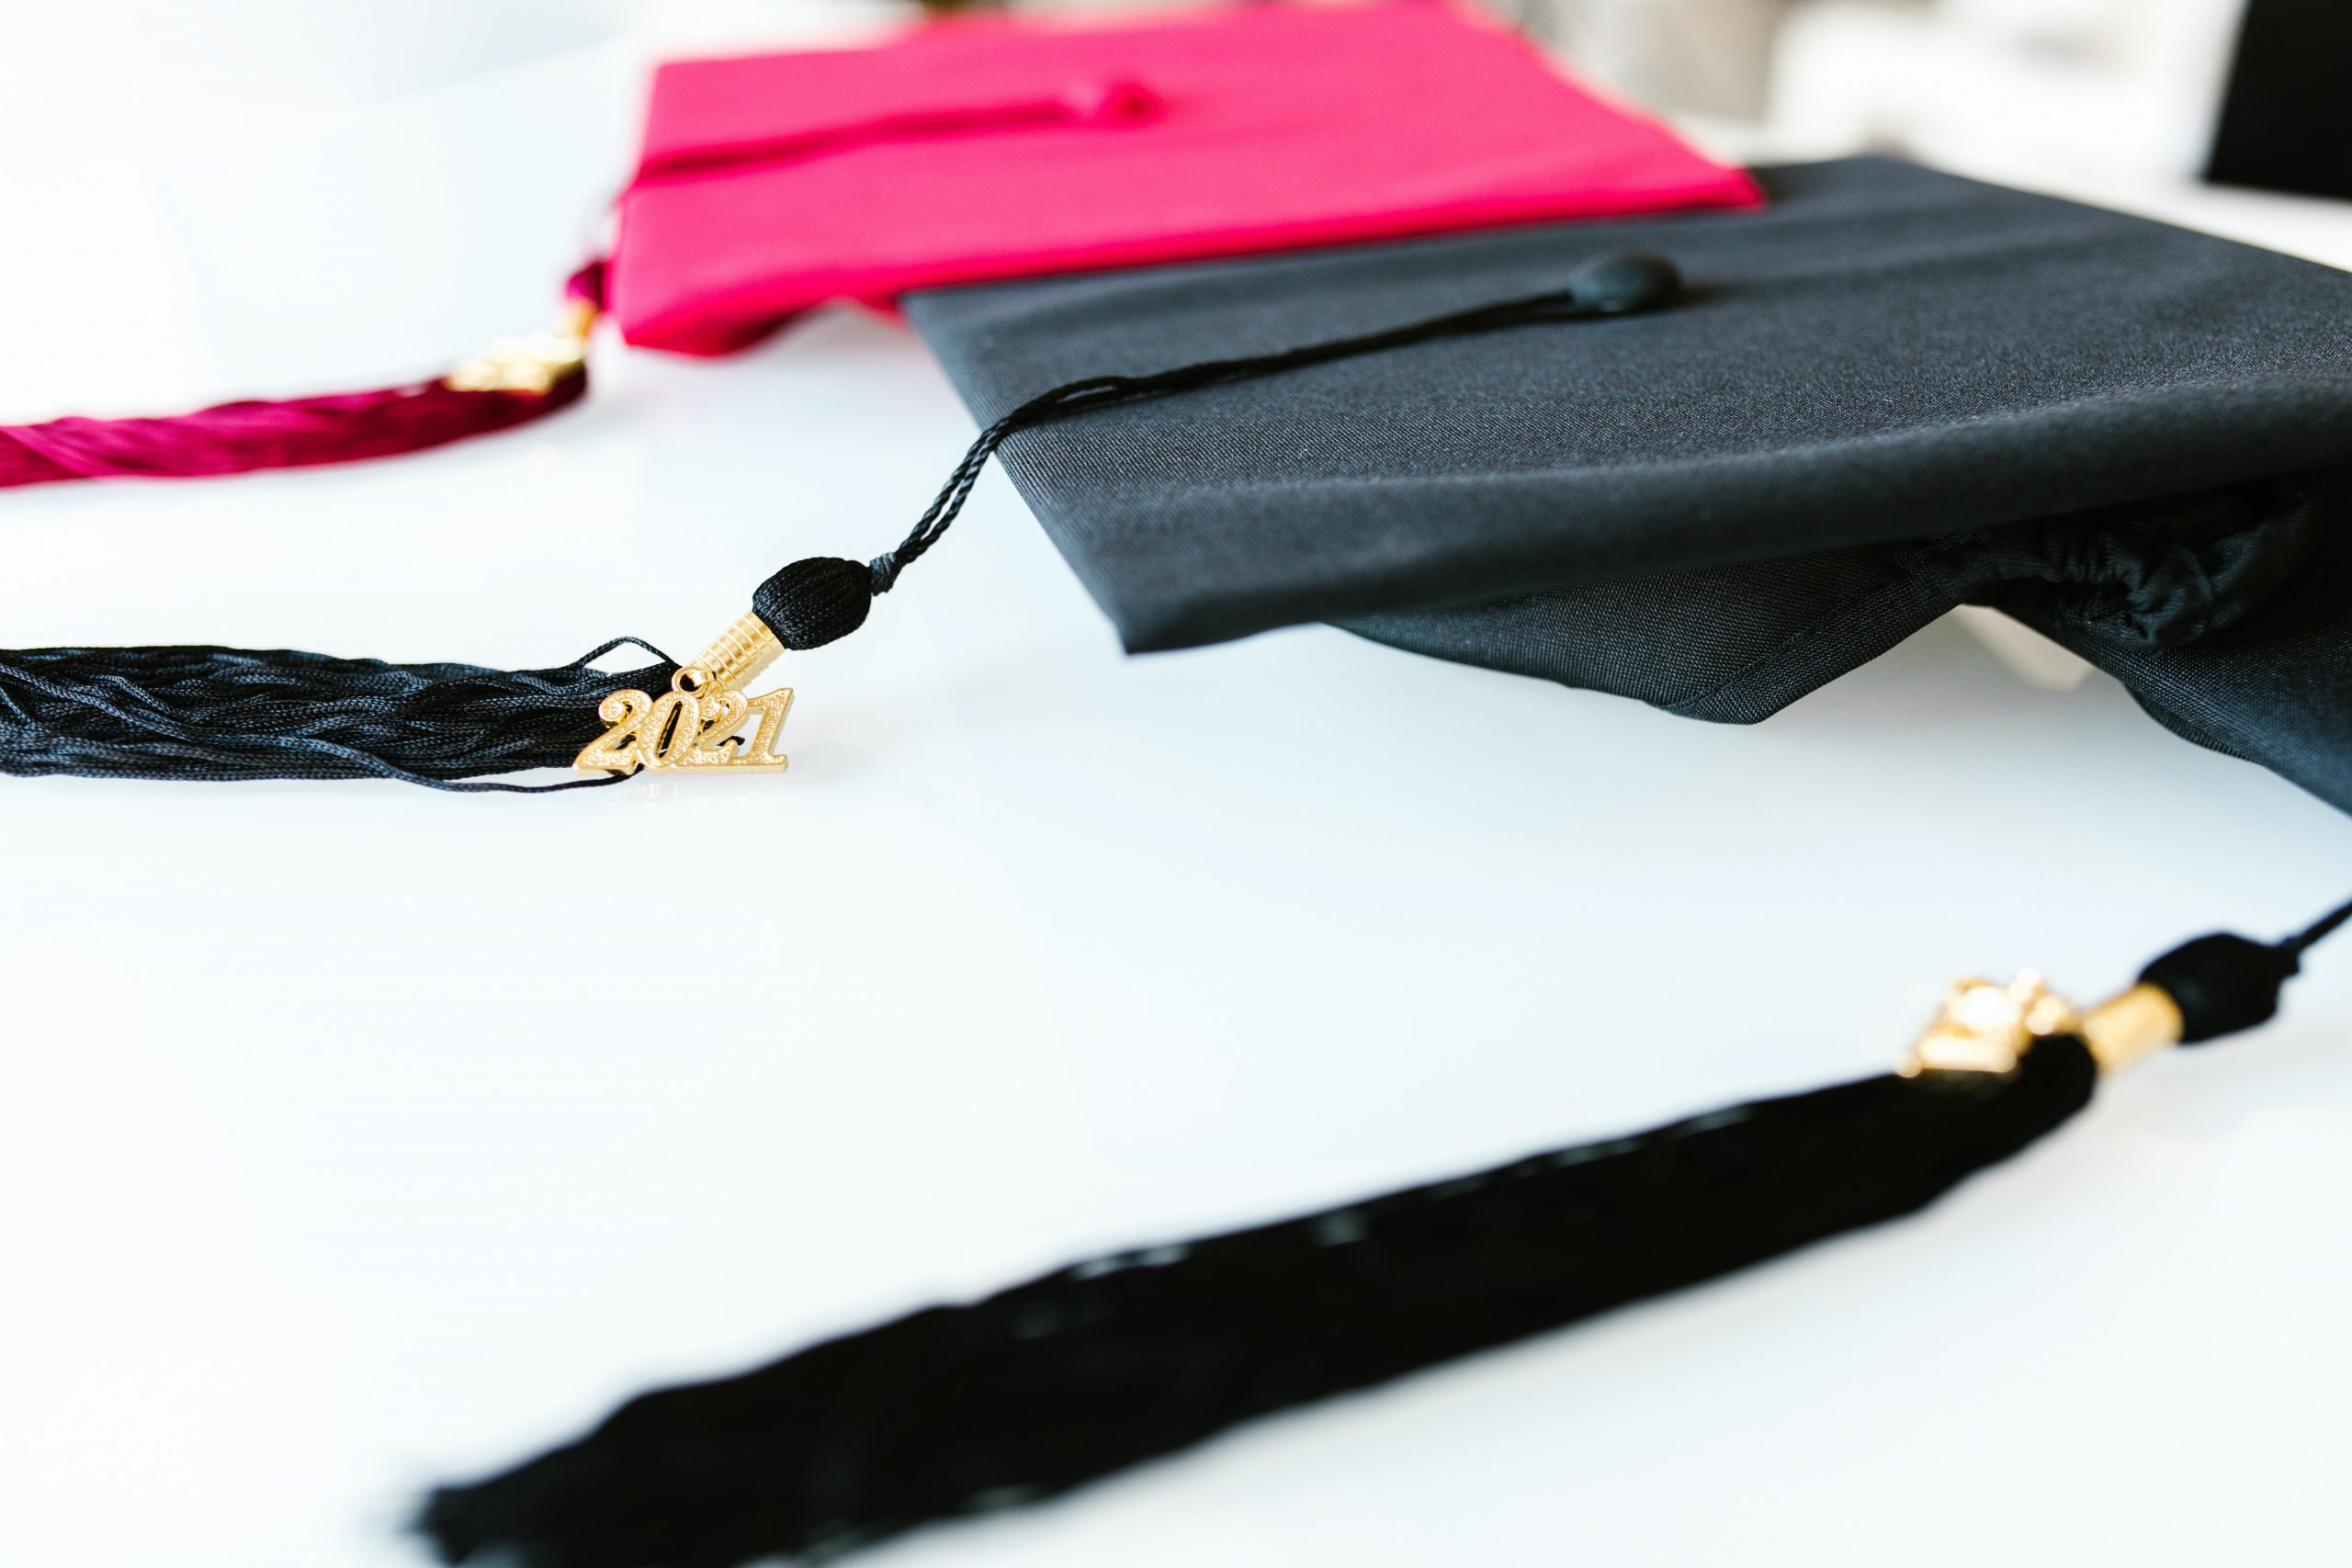 Red and black graduation caps and tassels on a white table